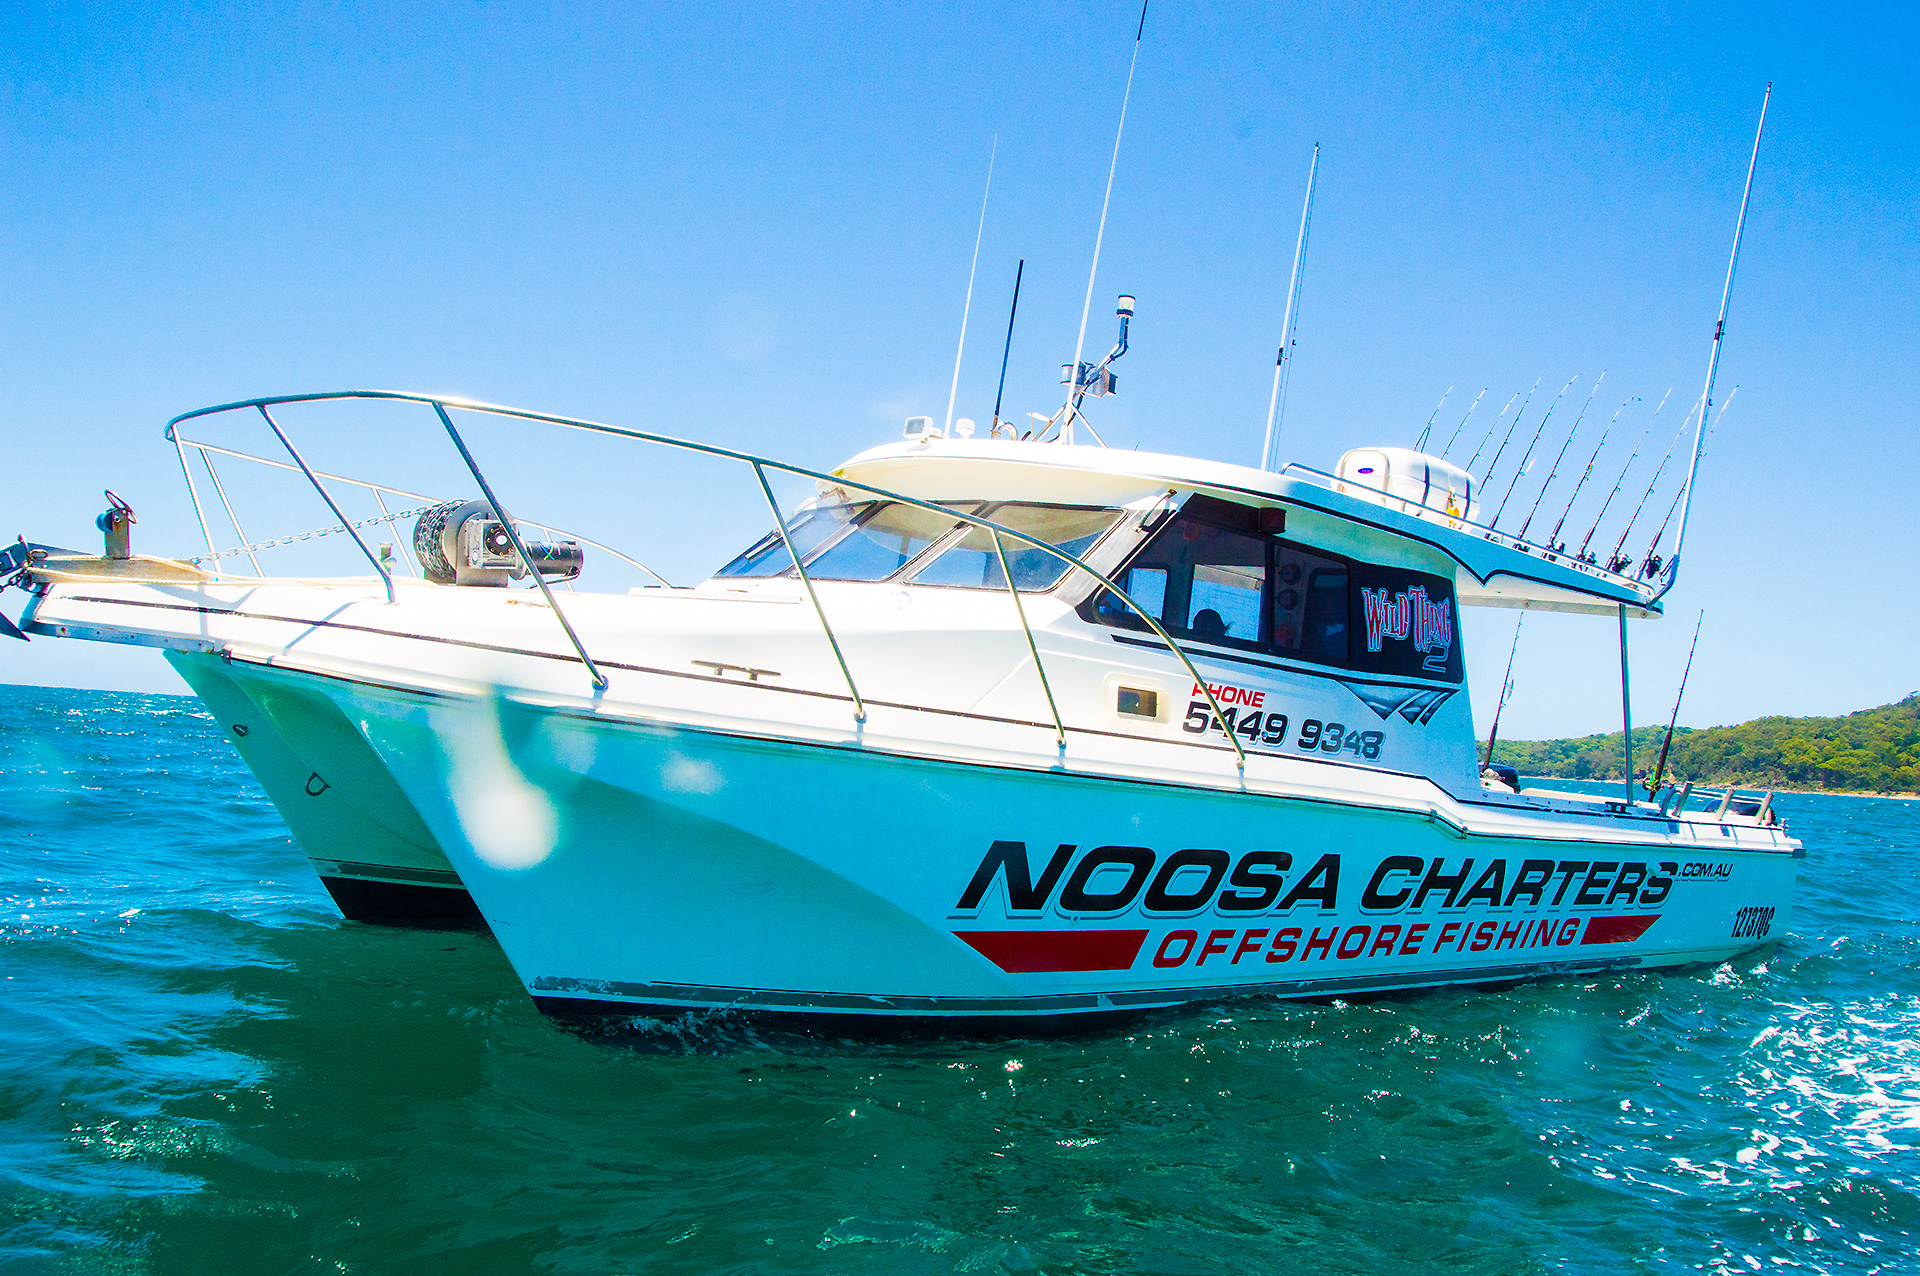 Offshore fishing charters in noosa on wild thing noosa for Offshore fishing boats